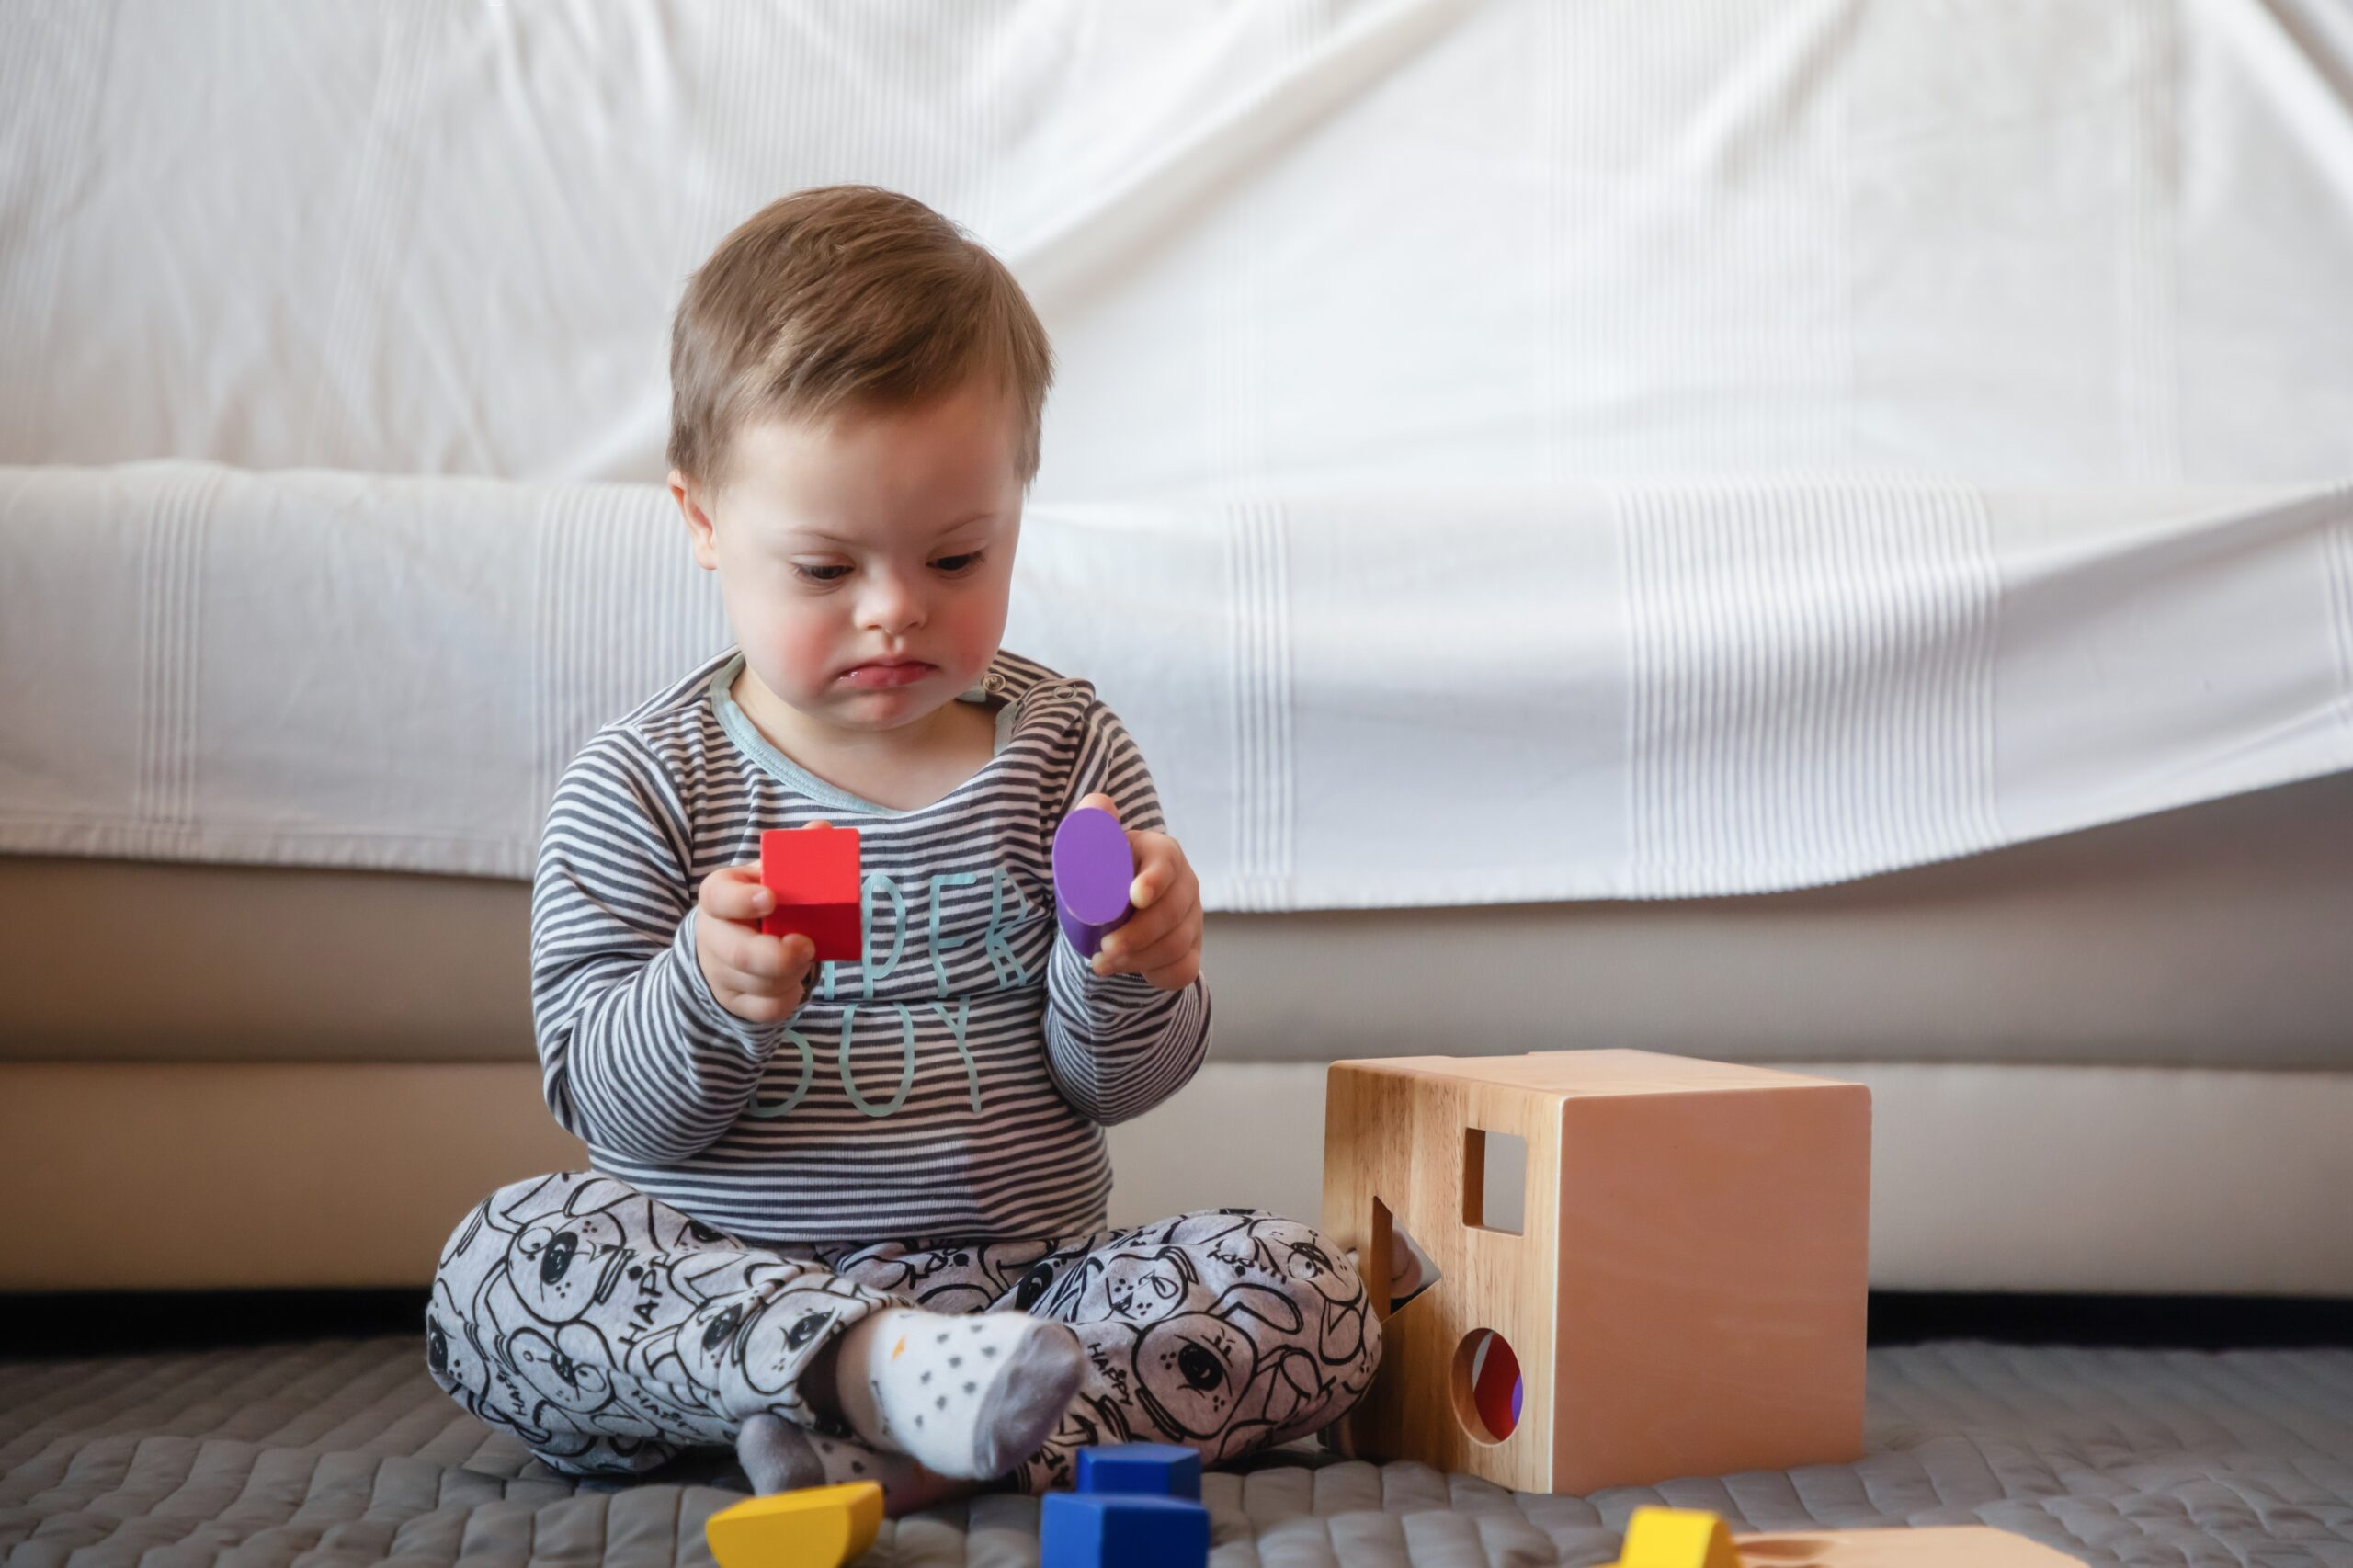 small-boy-with-down-syndrome-playing-with-toys-HWPJWCU-scaled